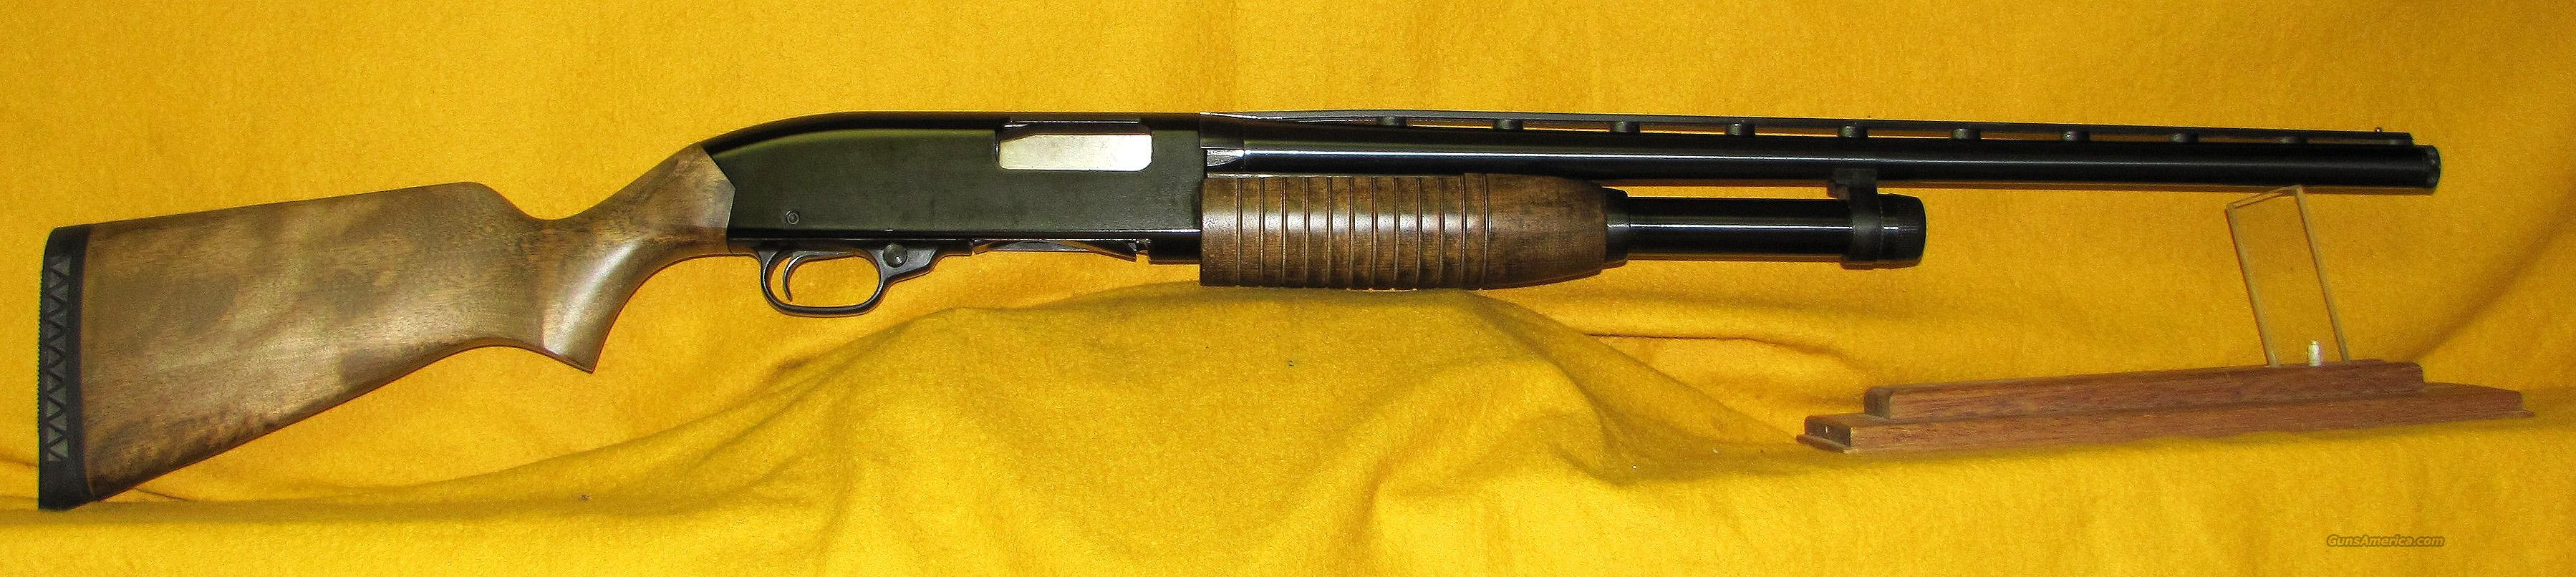 WINCHESTER 120 (YOUTH)  Guns > Shotguns > Winchester Shotguns - Modern > Pump Action > Hunting